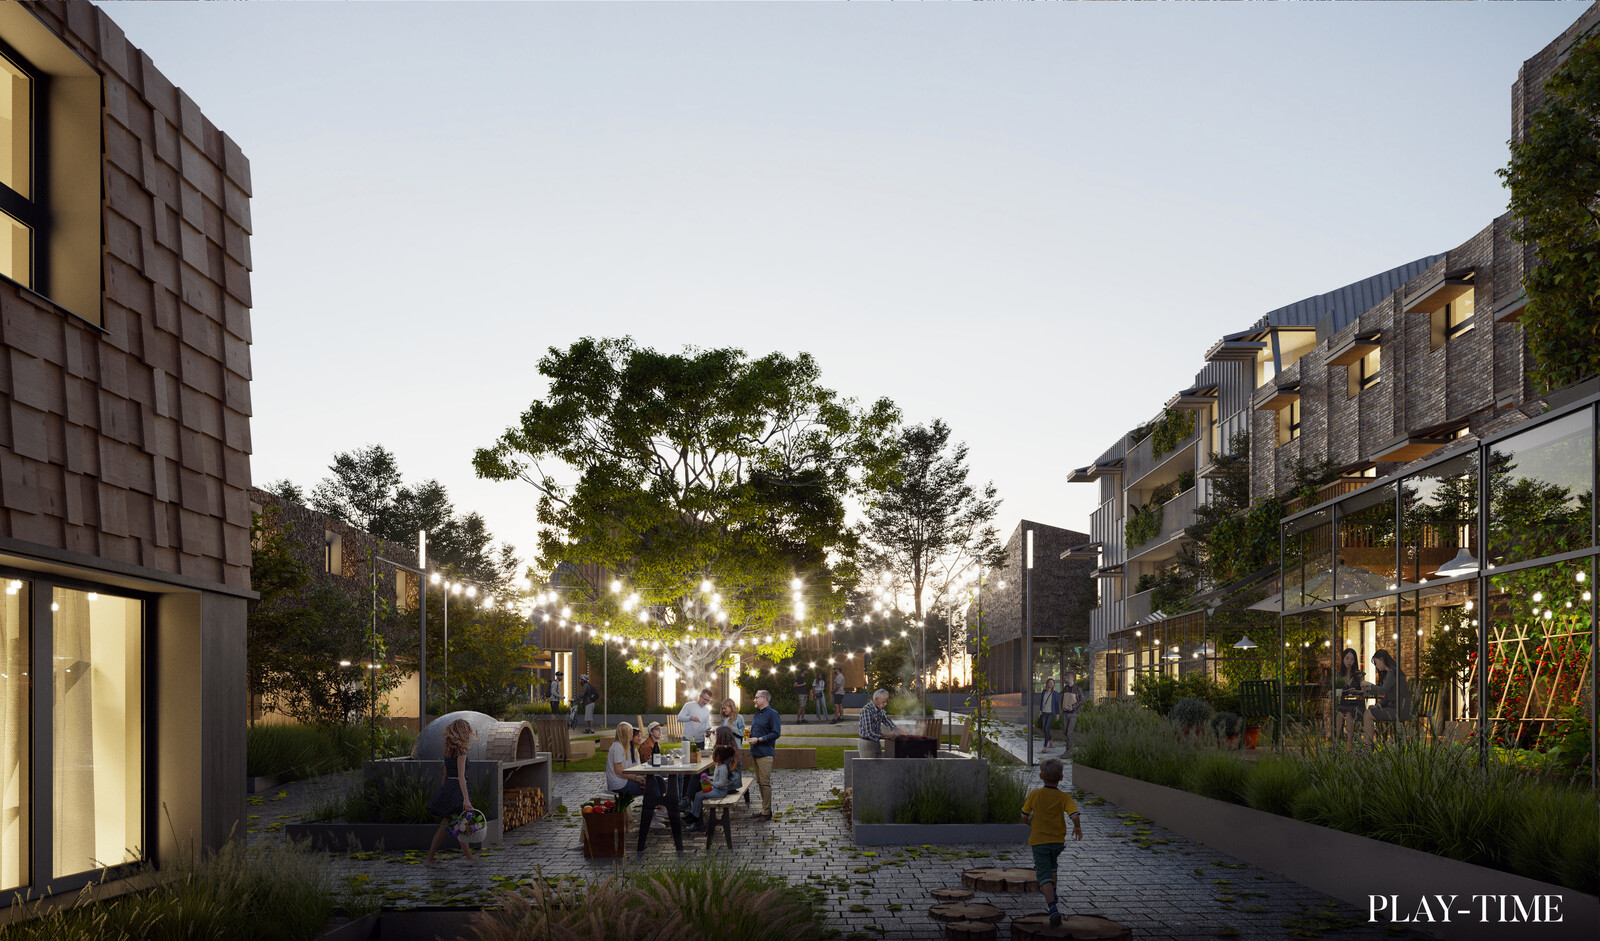 2030 concept housing designed by Perpendicular Architecture. Image by Play-time